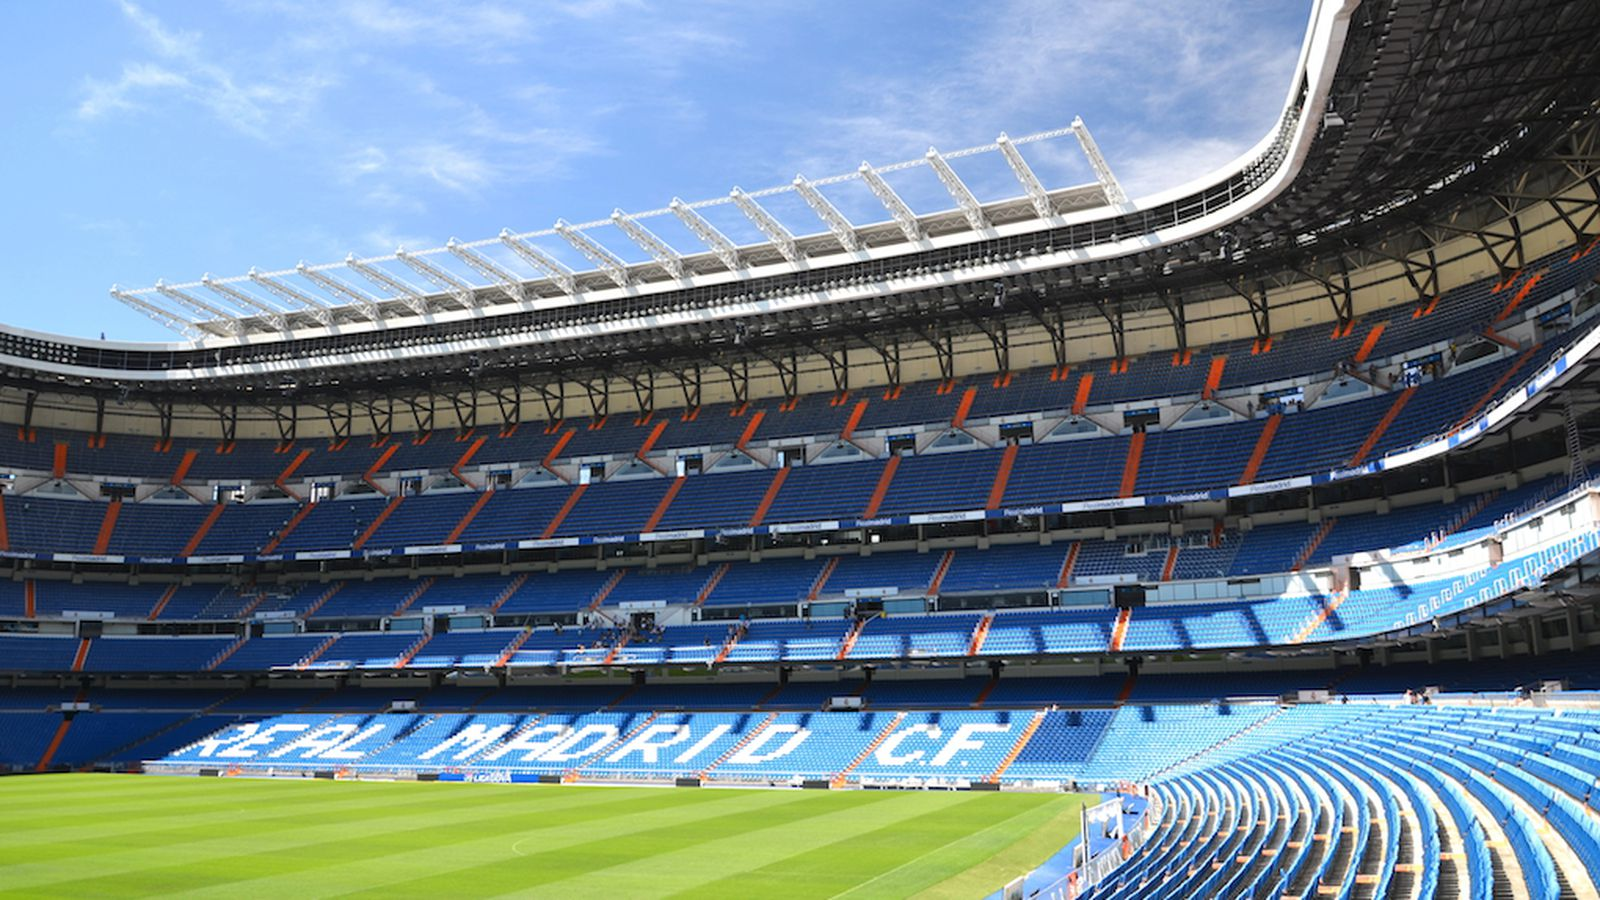 La liga de f tbol profesional laliga is a private non profit sports - Microsoft In Talks To Rename Real Madrid S Iconic Soccer Stadium The Verge